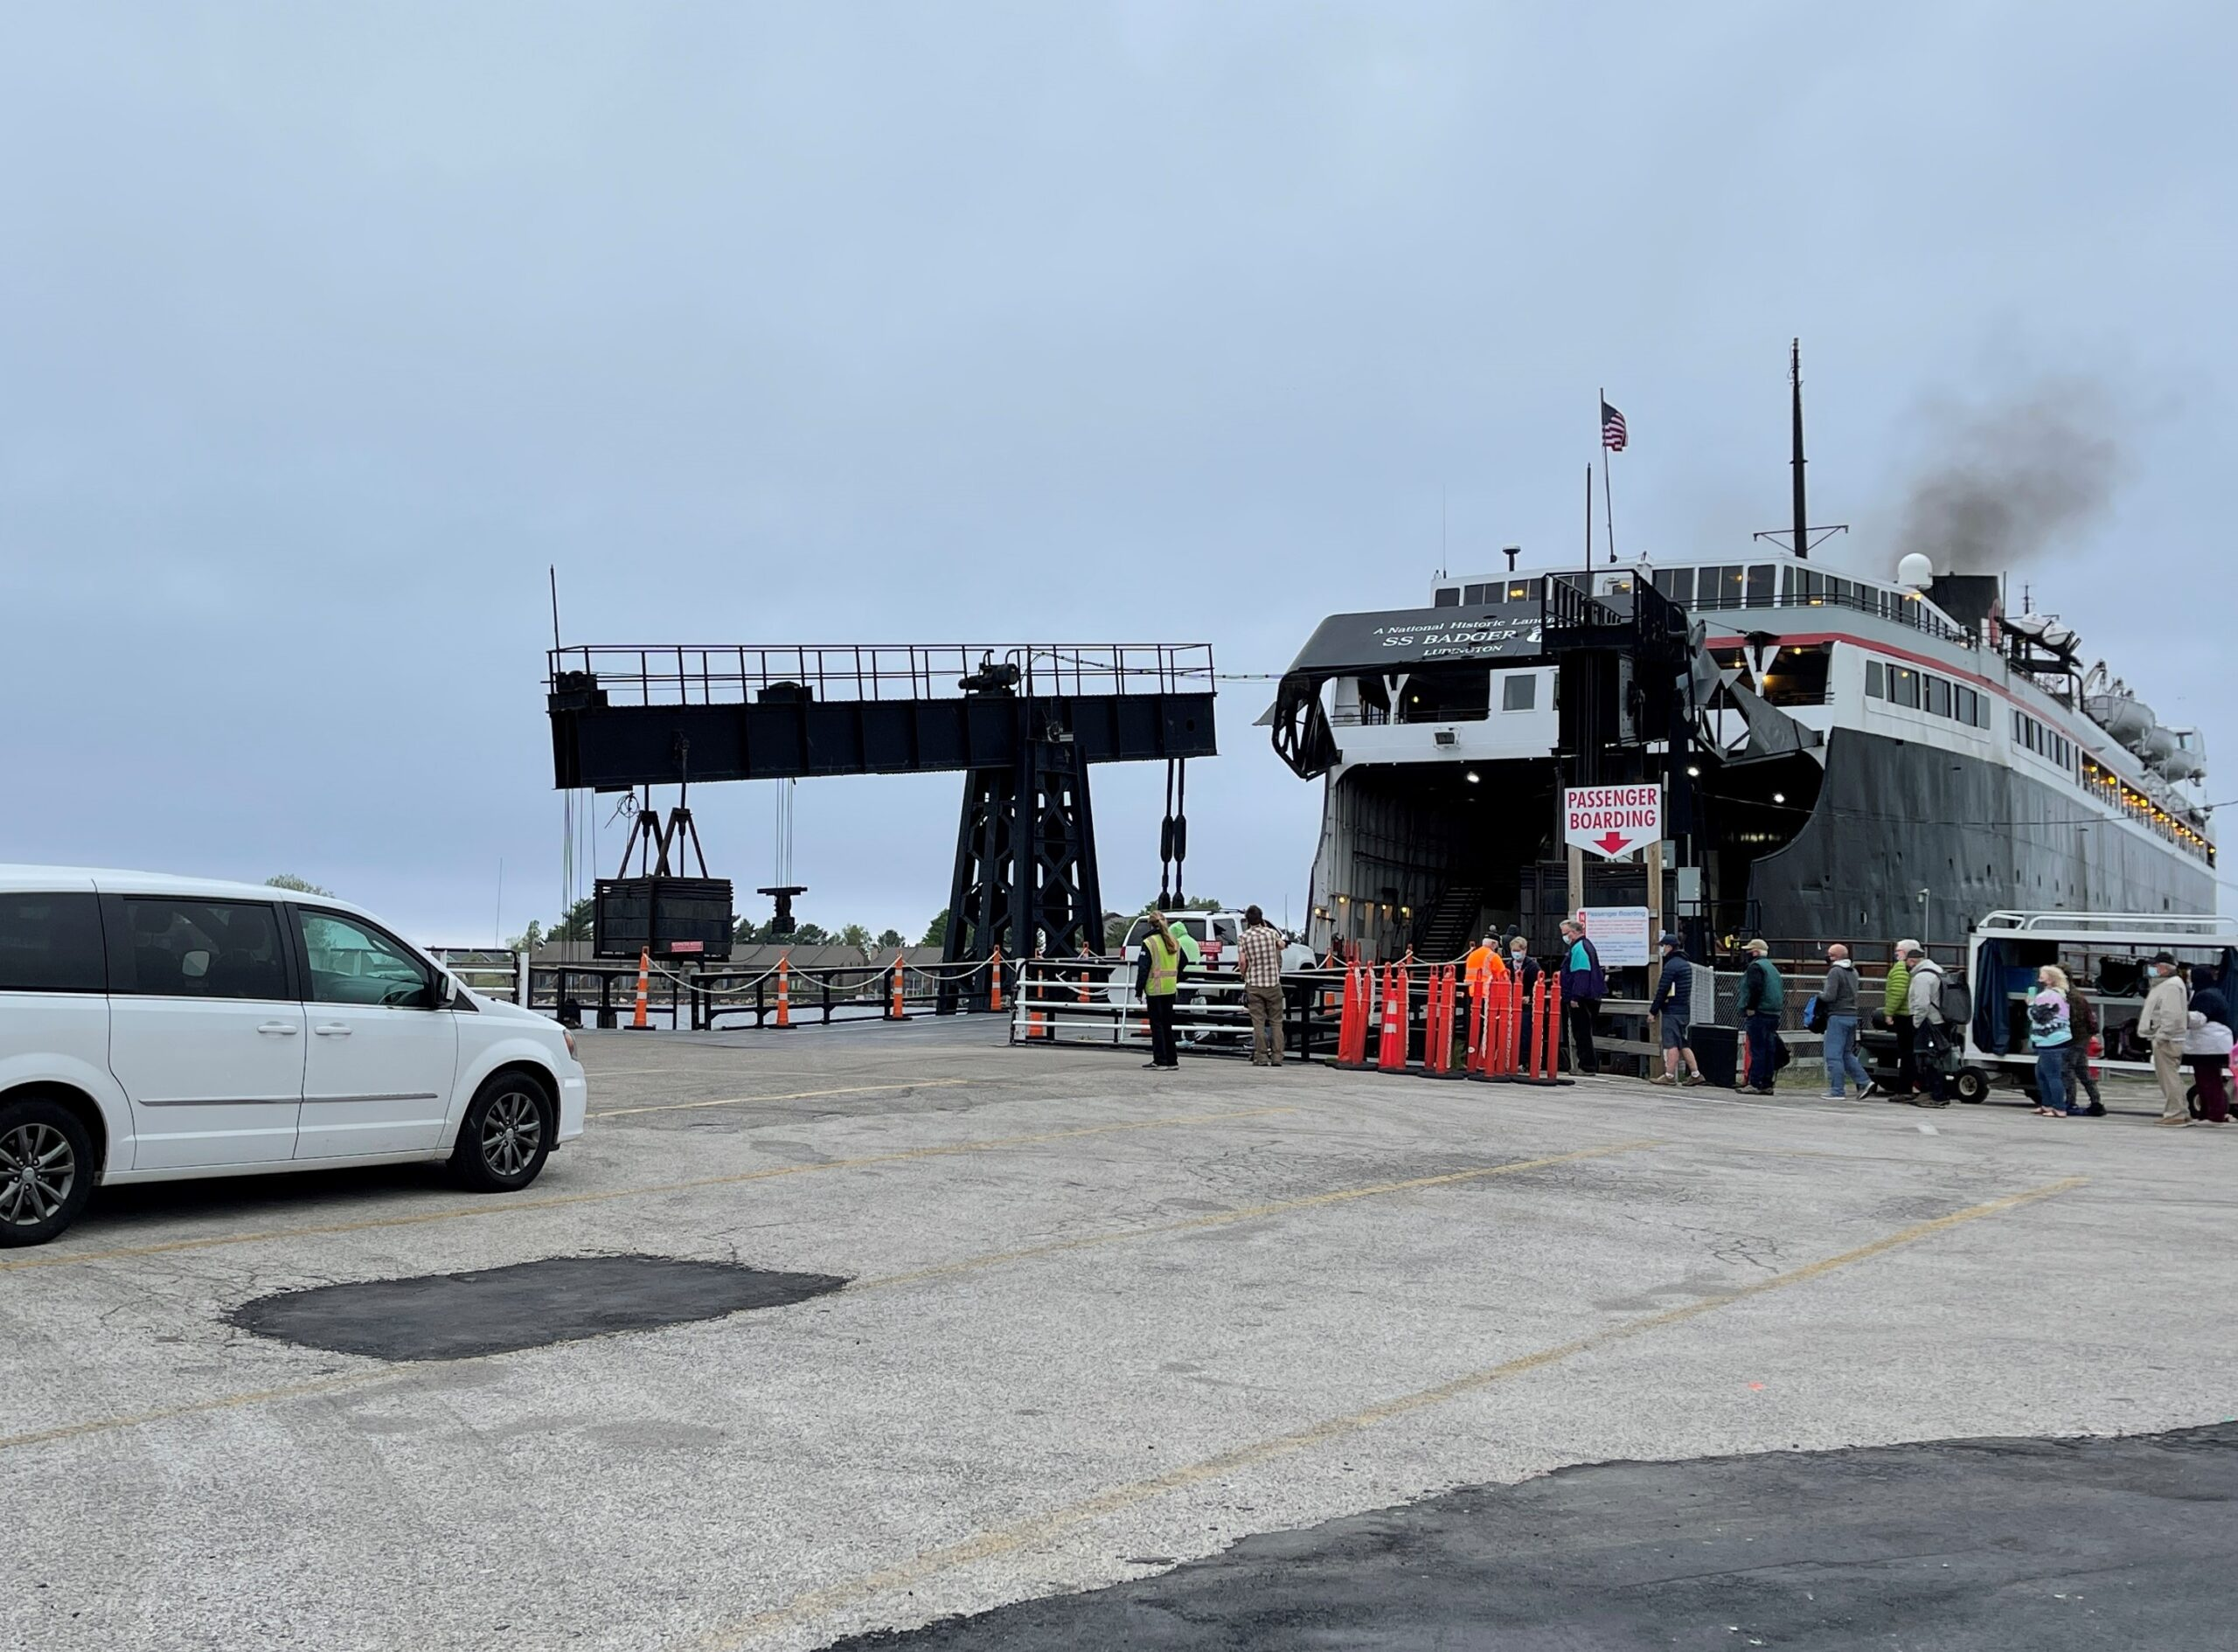 vehicle waiting to board the SS Badger carferry.